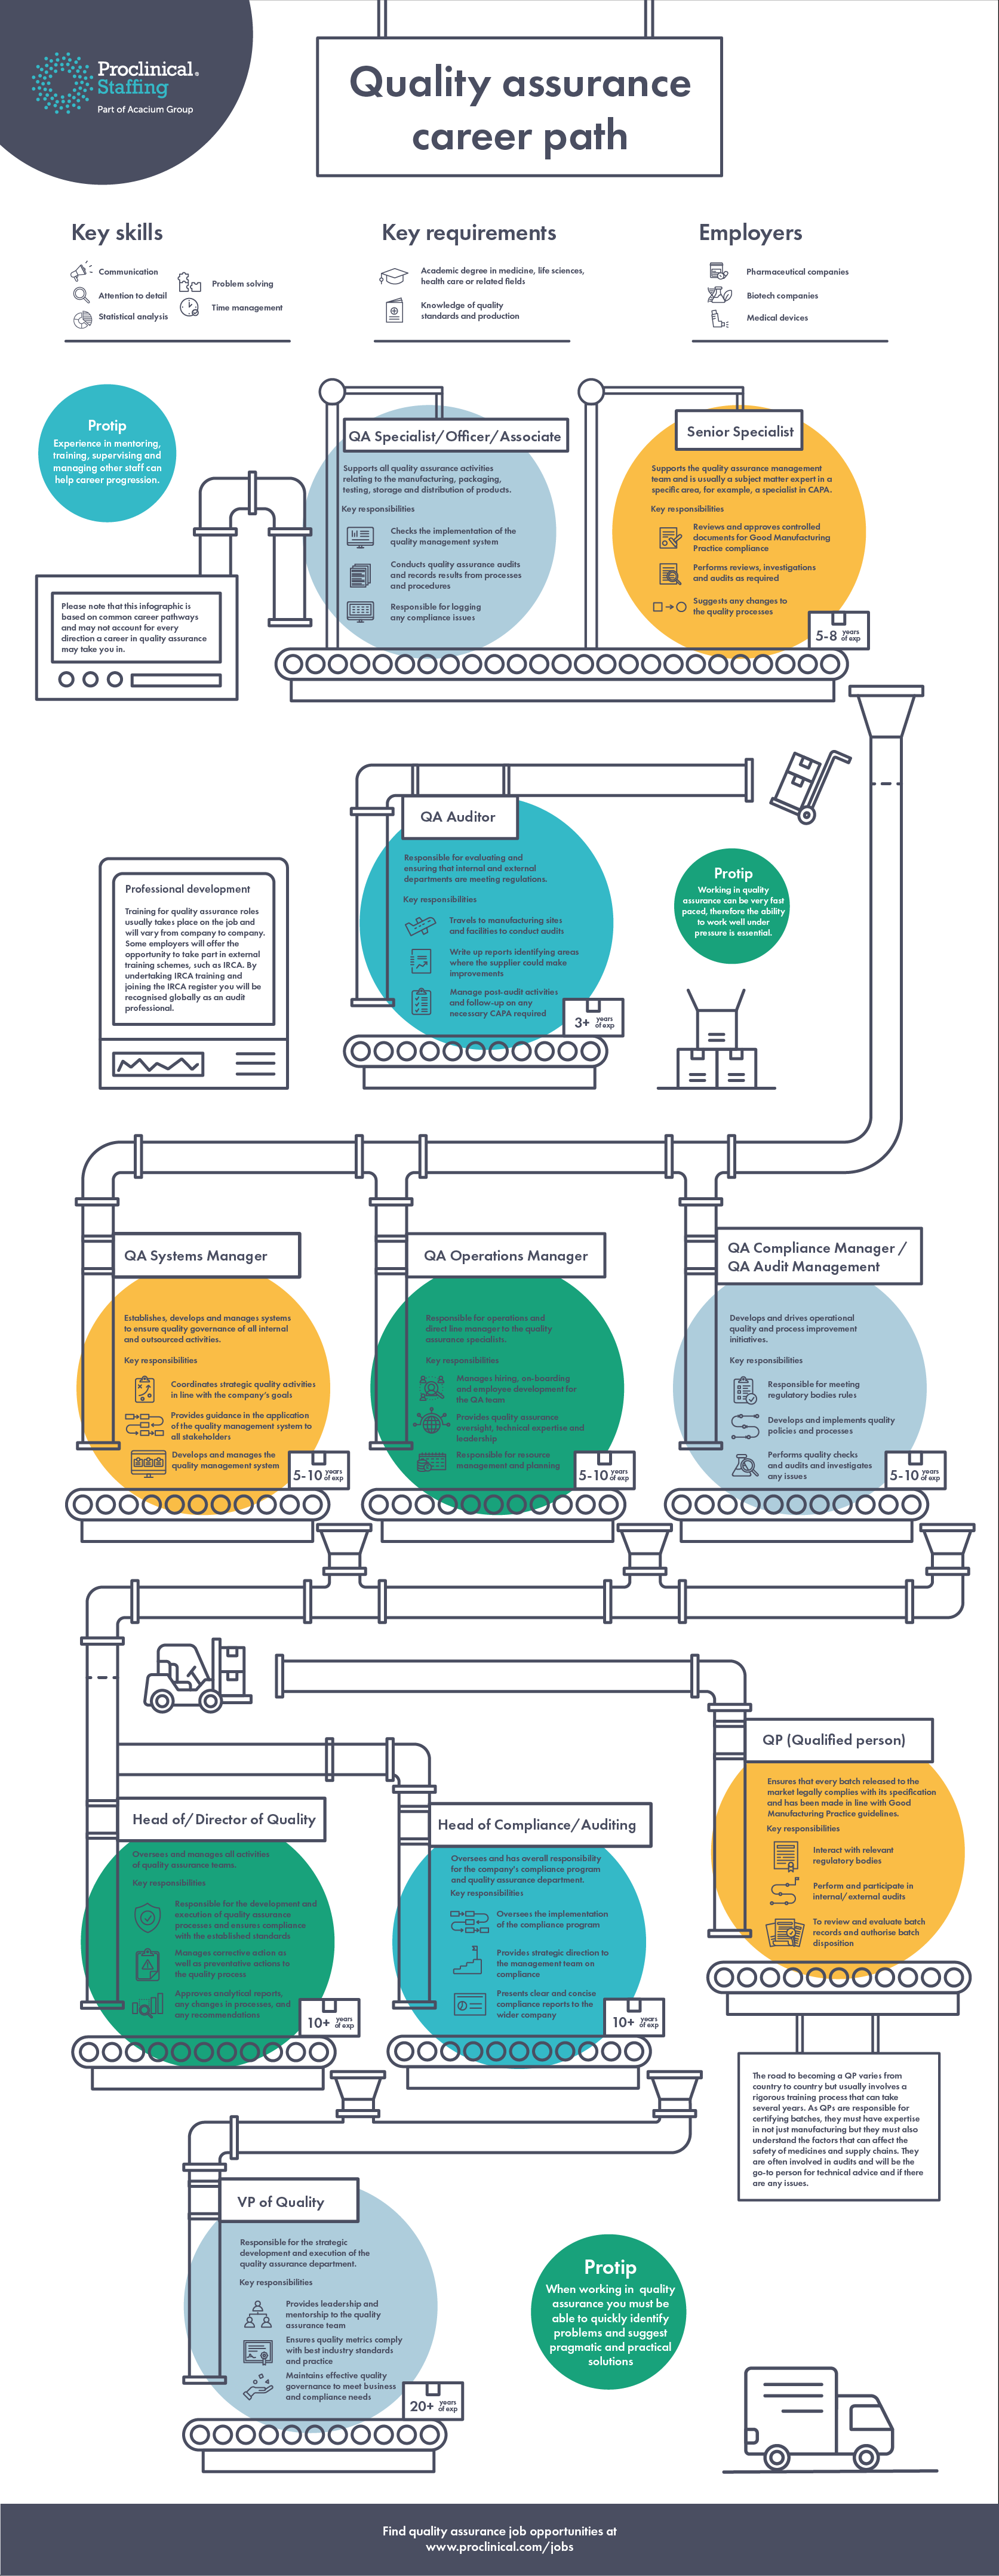 Infographic: Quality assurance career path